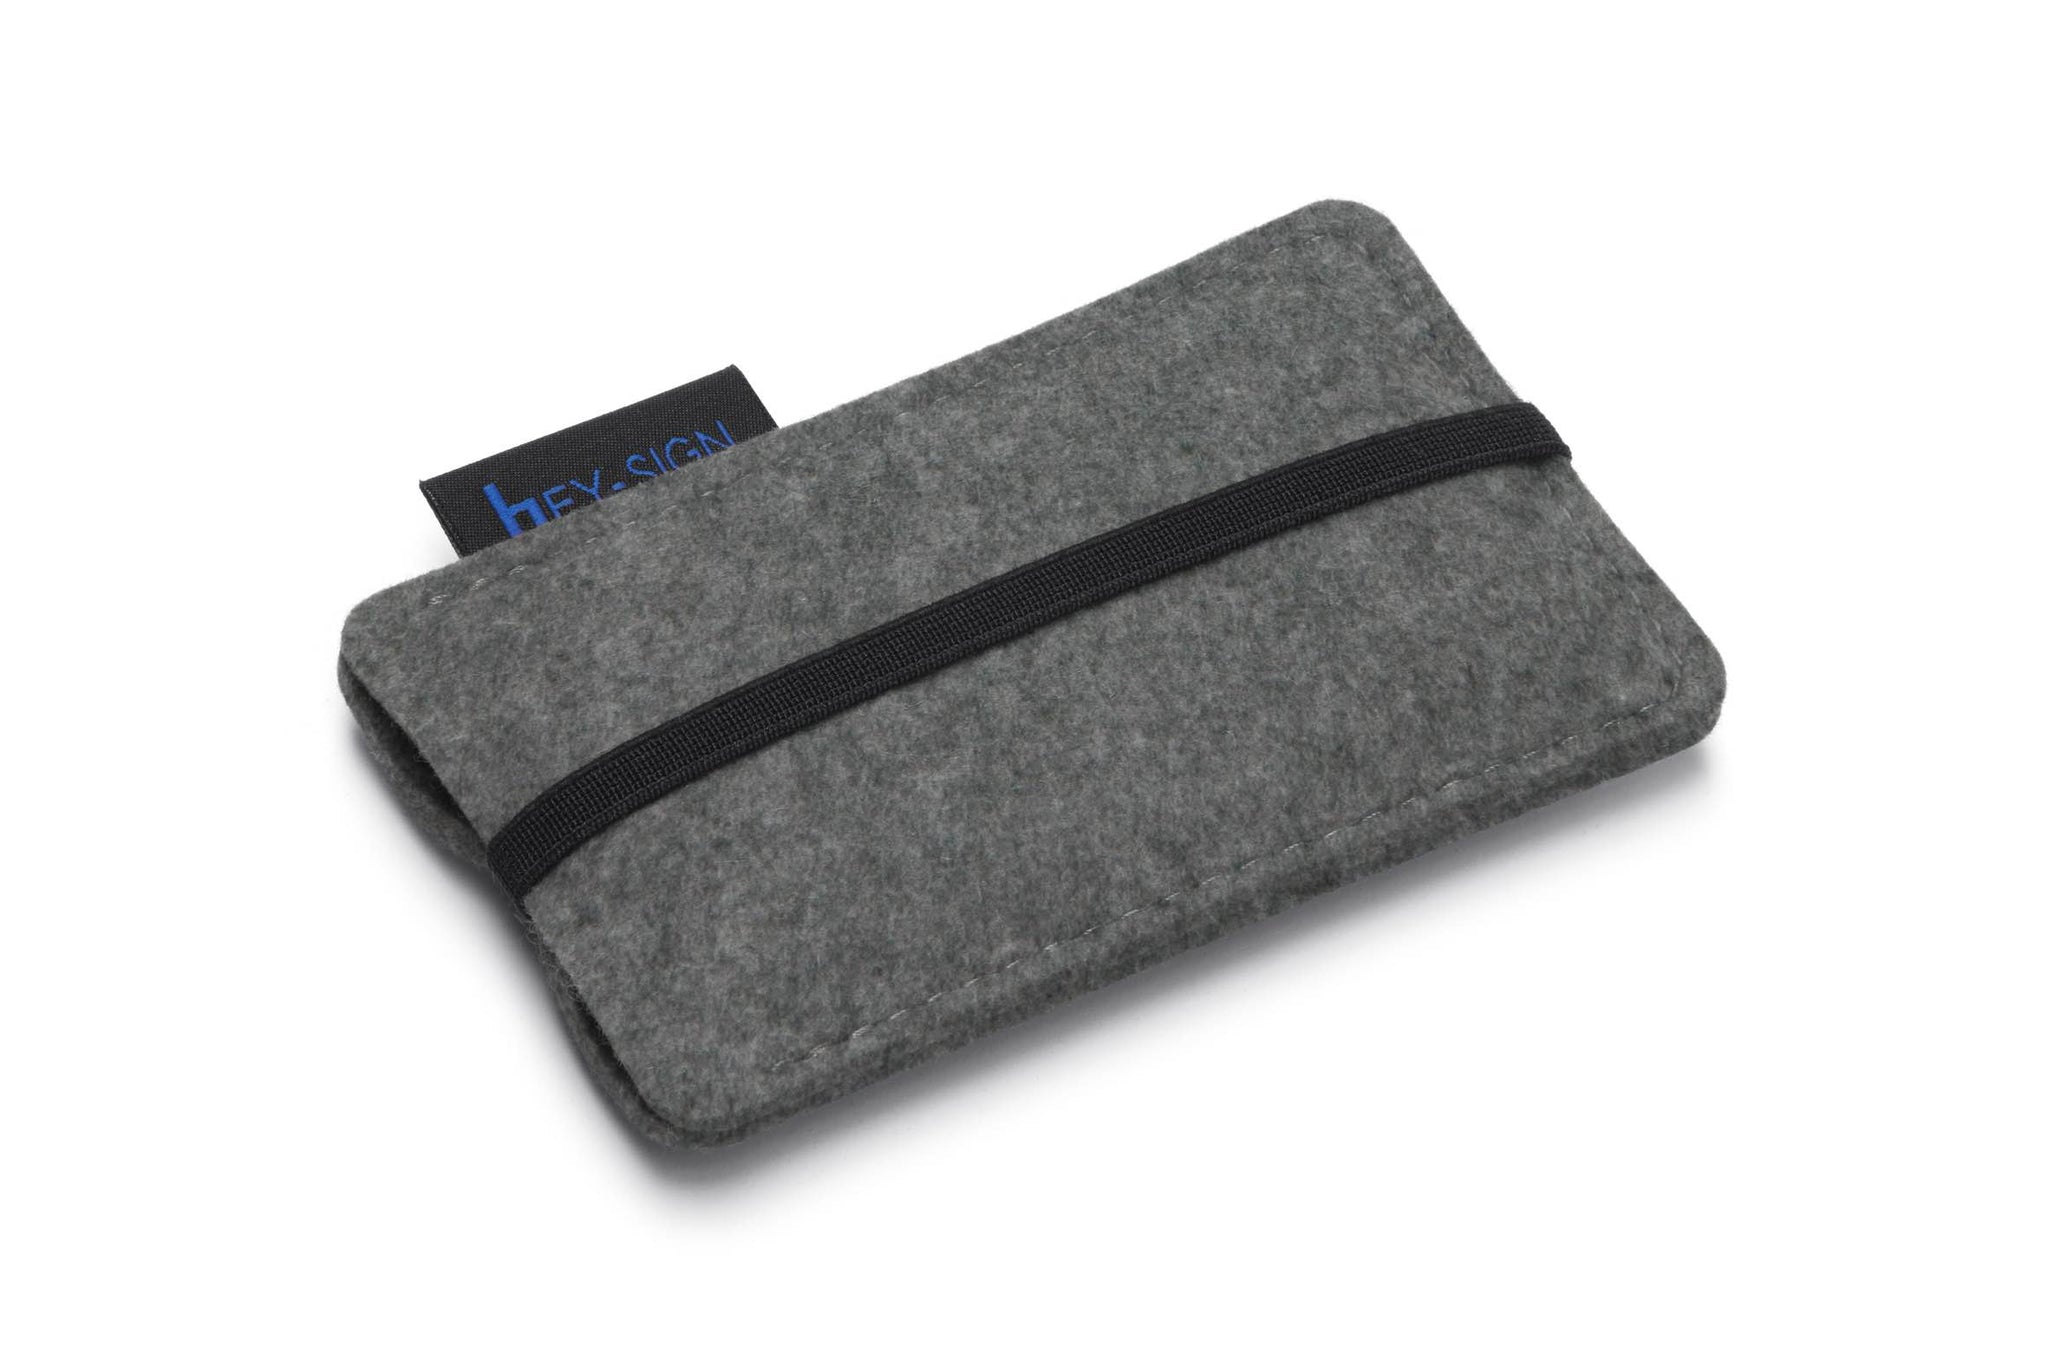 Felt Smartphone Sleeve | iPhone 6-X, Galaxy S6-9 or similar